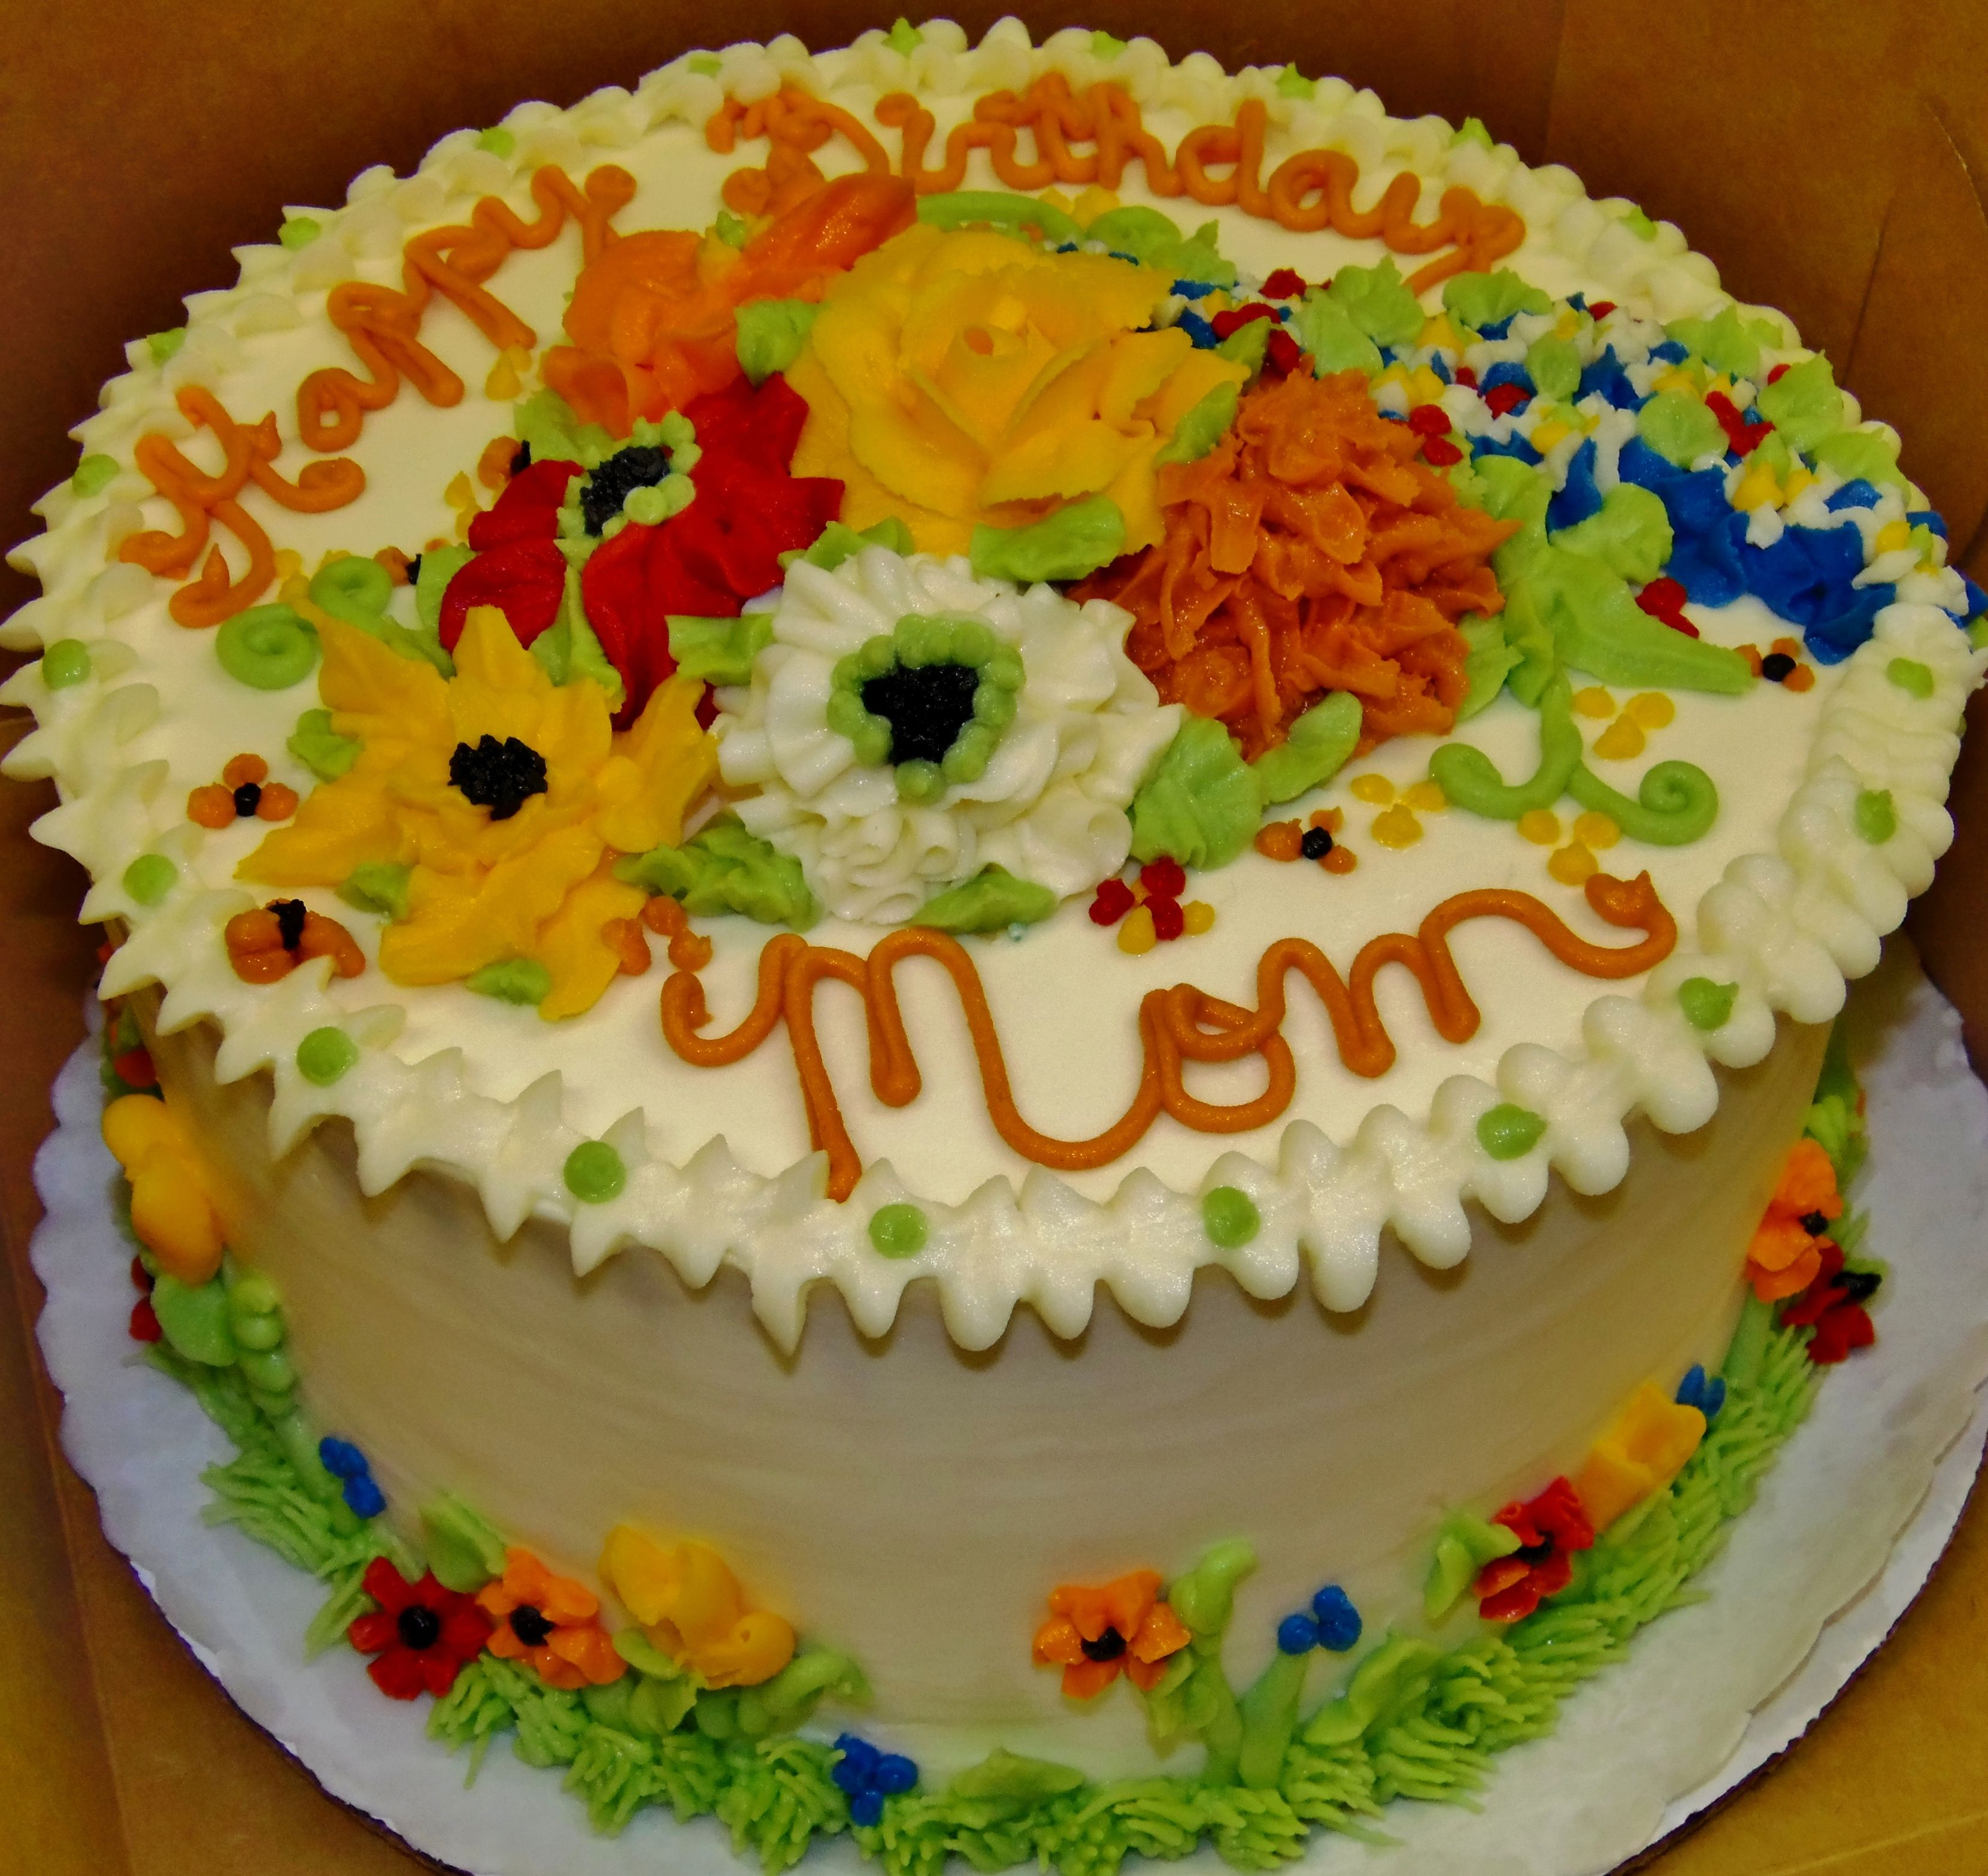 2layer 8inch round cake with fall buttercream flowers for an